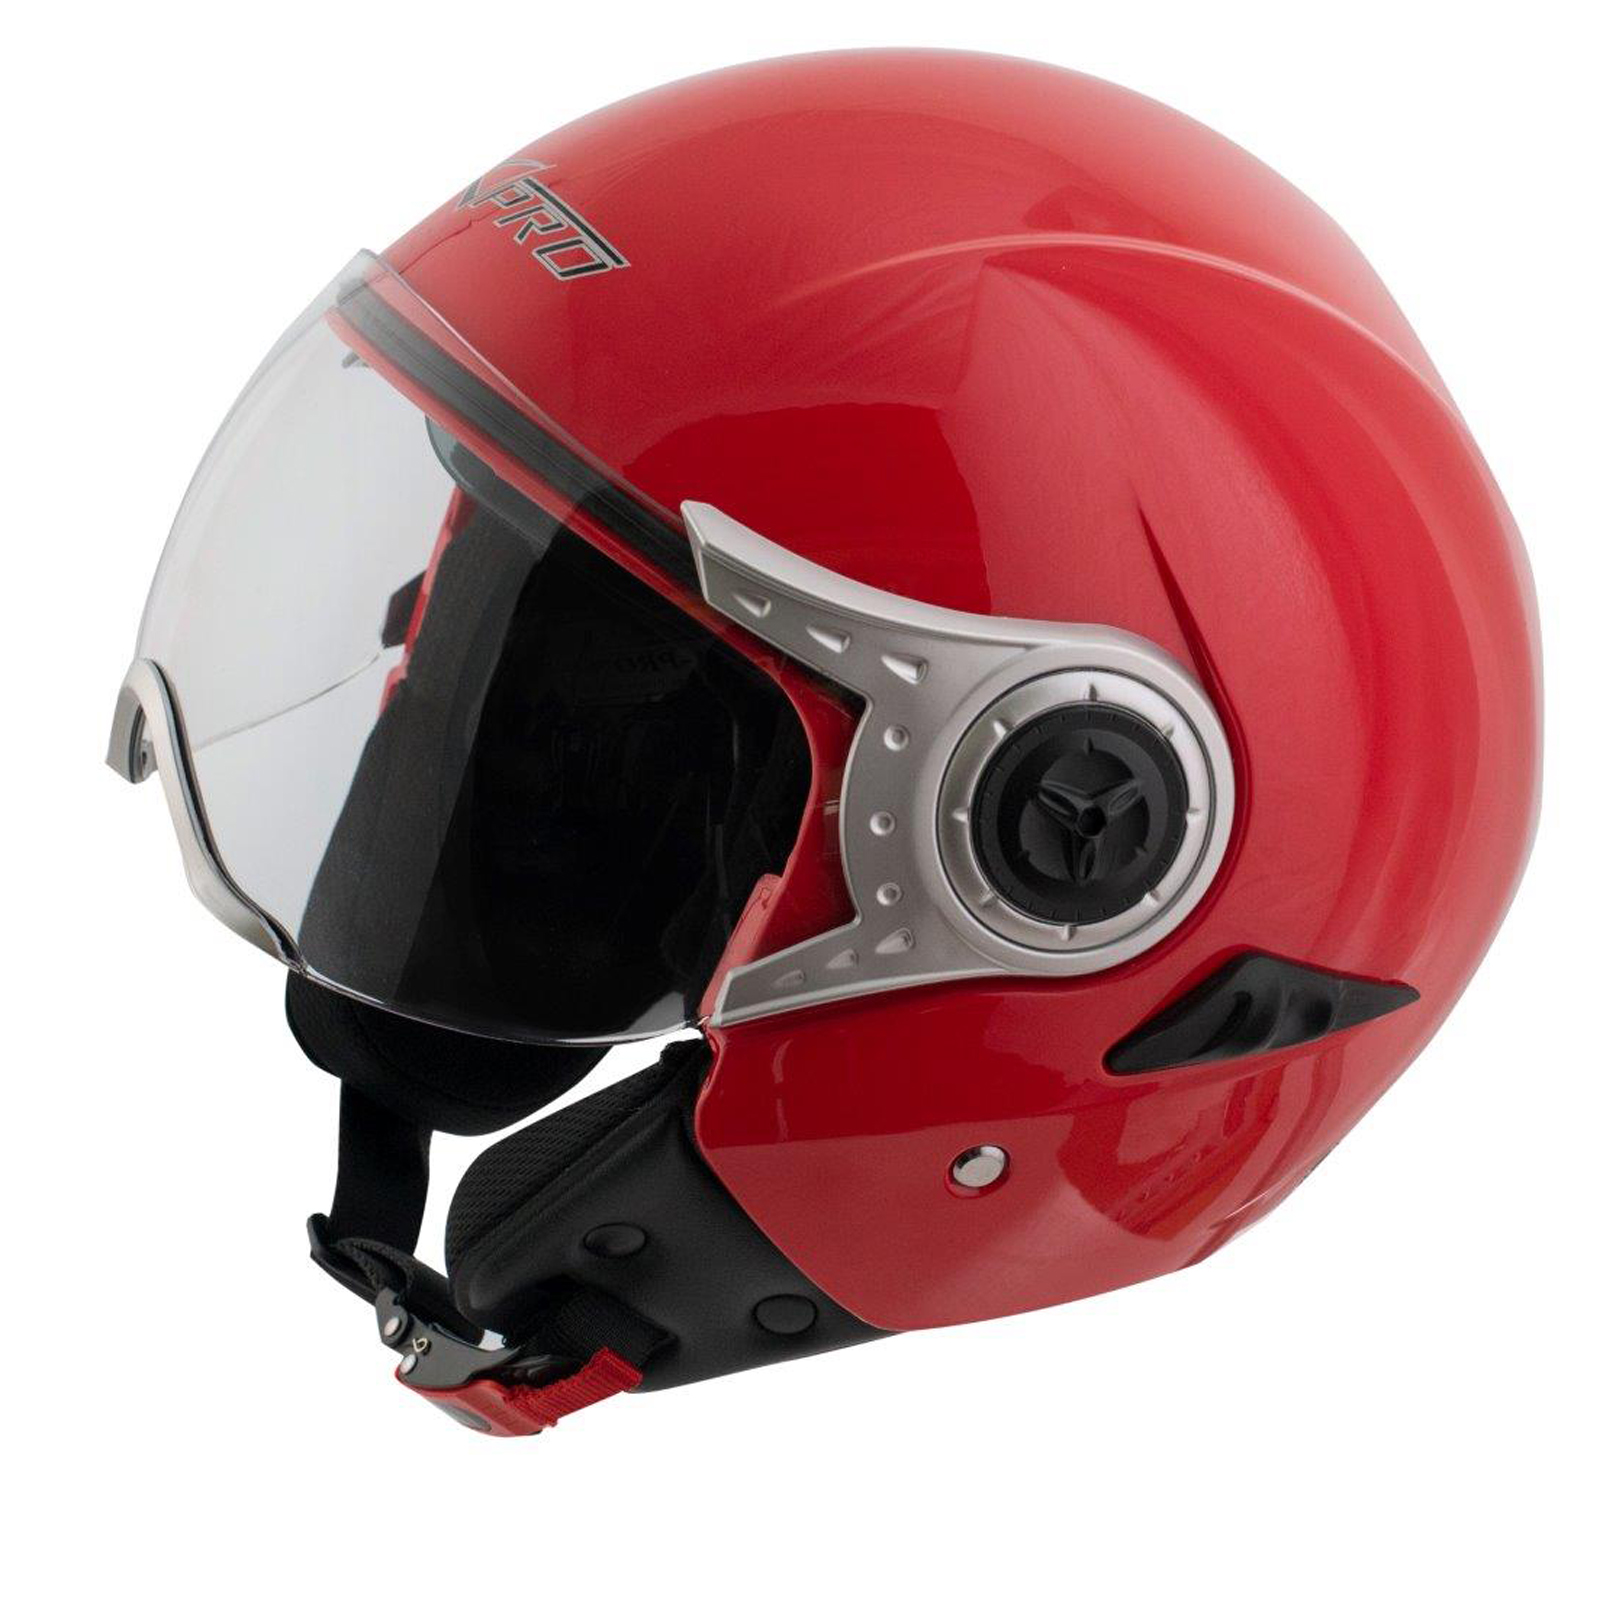 demi jet casque homologu moto scooter visi re pare soleil rouge ebay. Black Bedroom Furniture Sets. Home Design Ideas